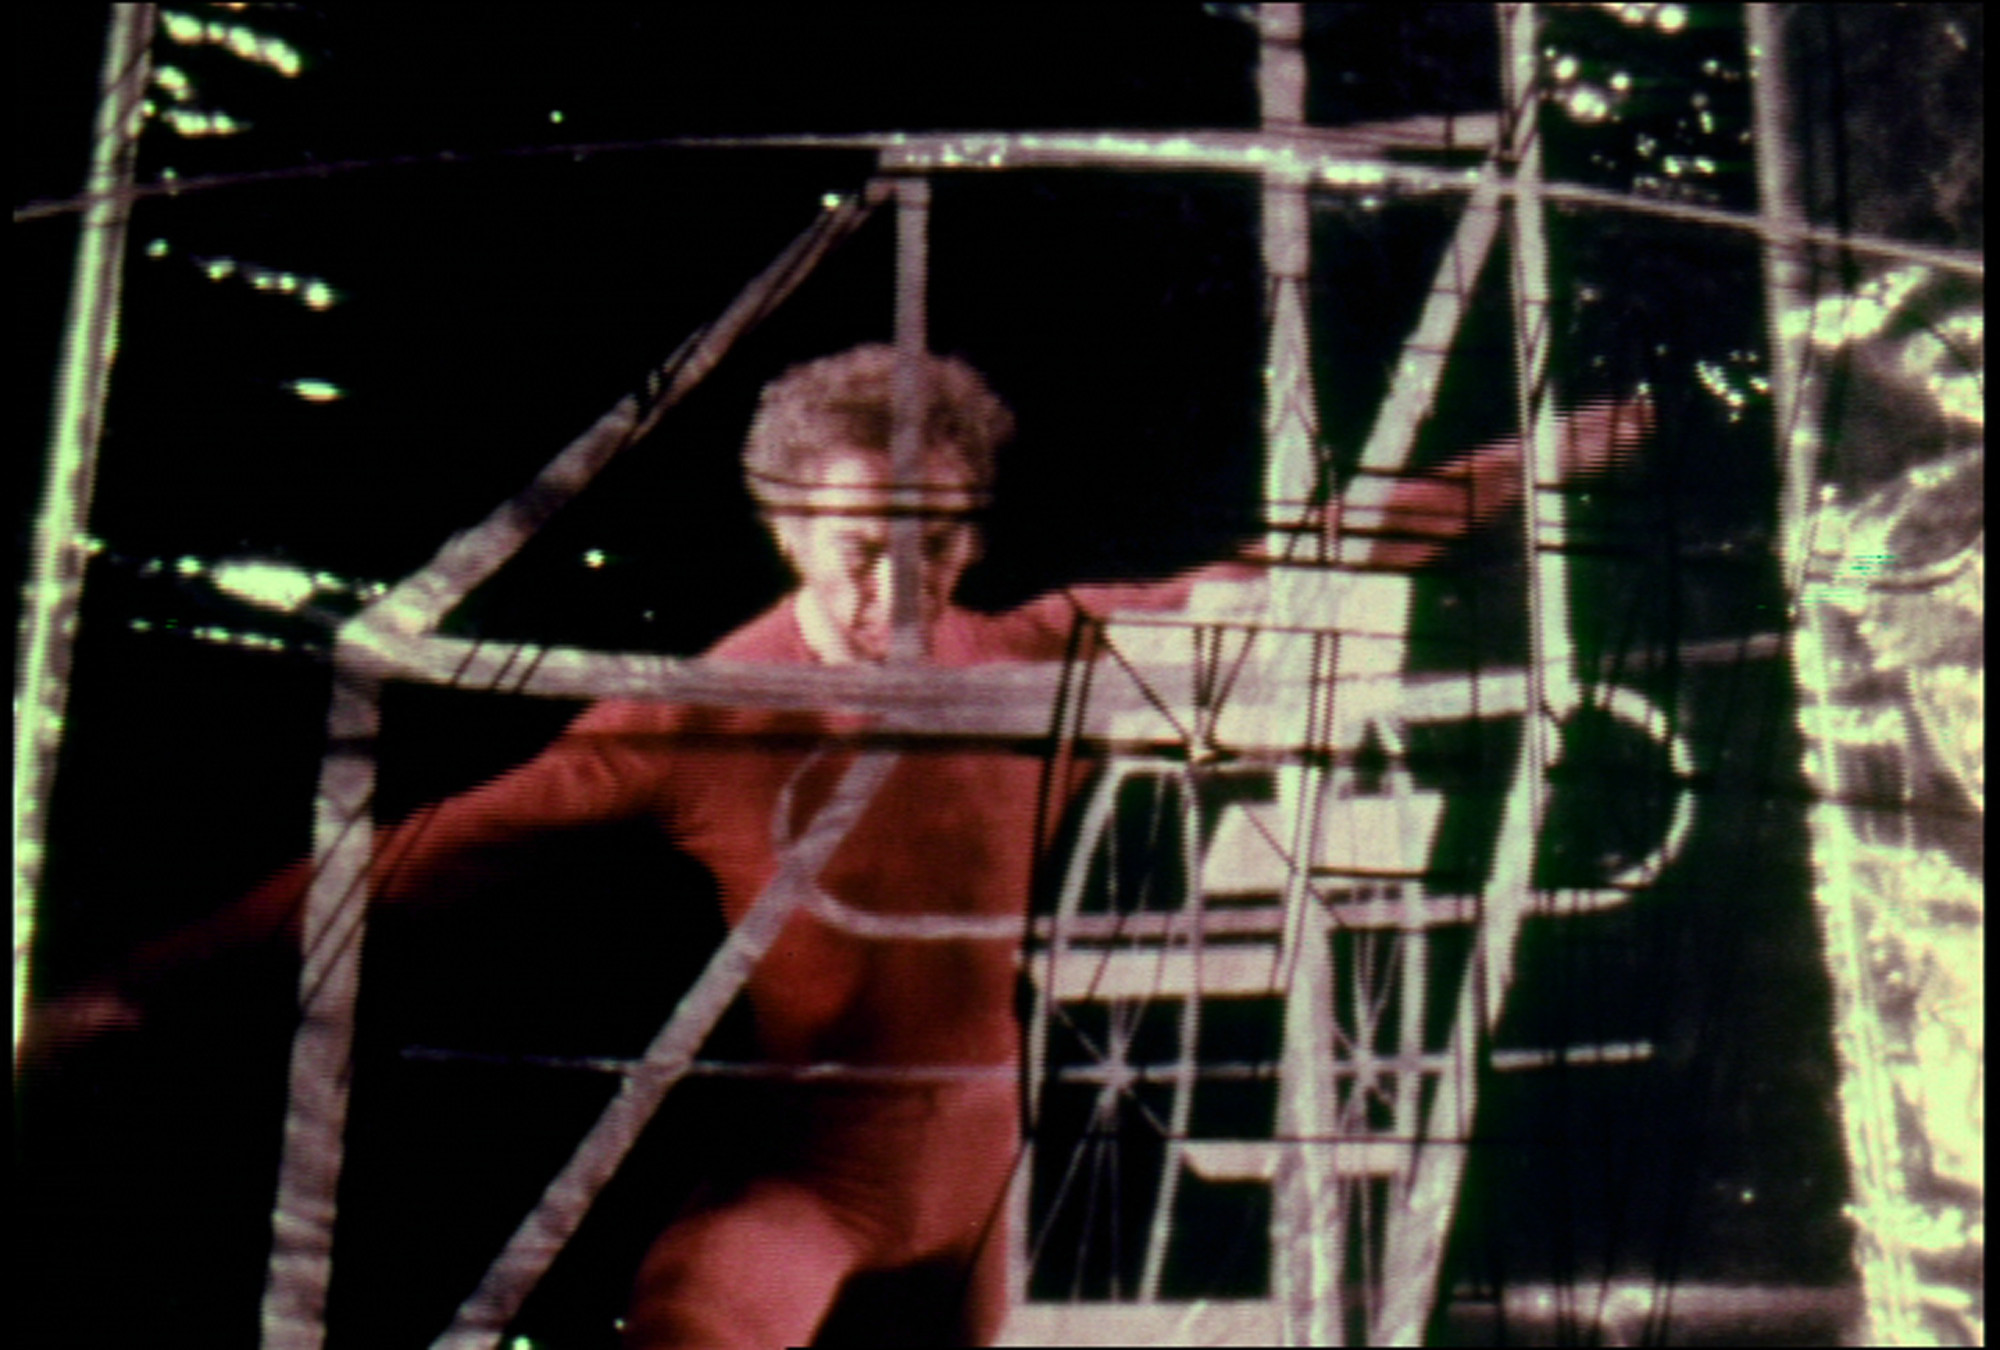 Charles Atlas, Merce Cunningham. Walkaround Time. 1973